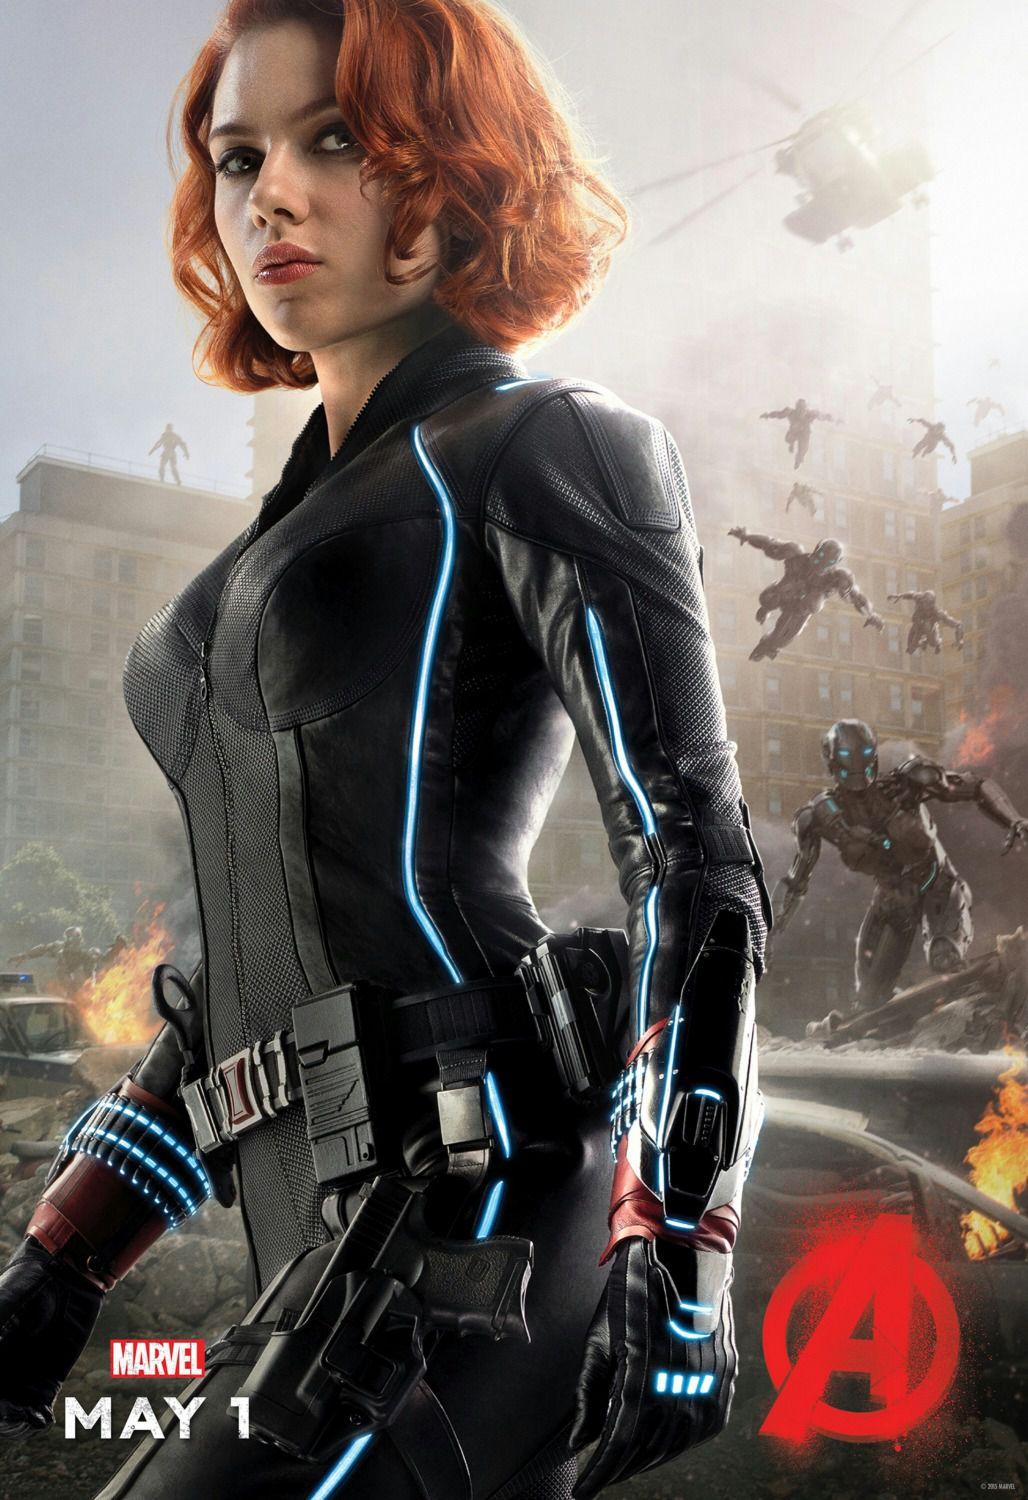 Avengers 2 - Age of Ultron . poster - Black Widow